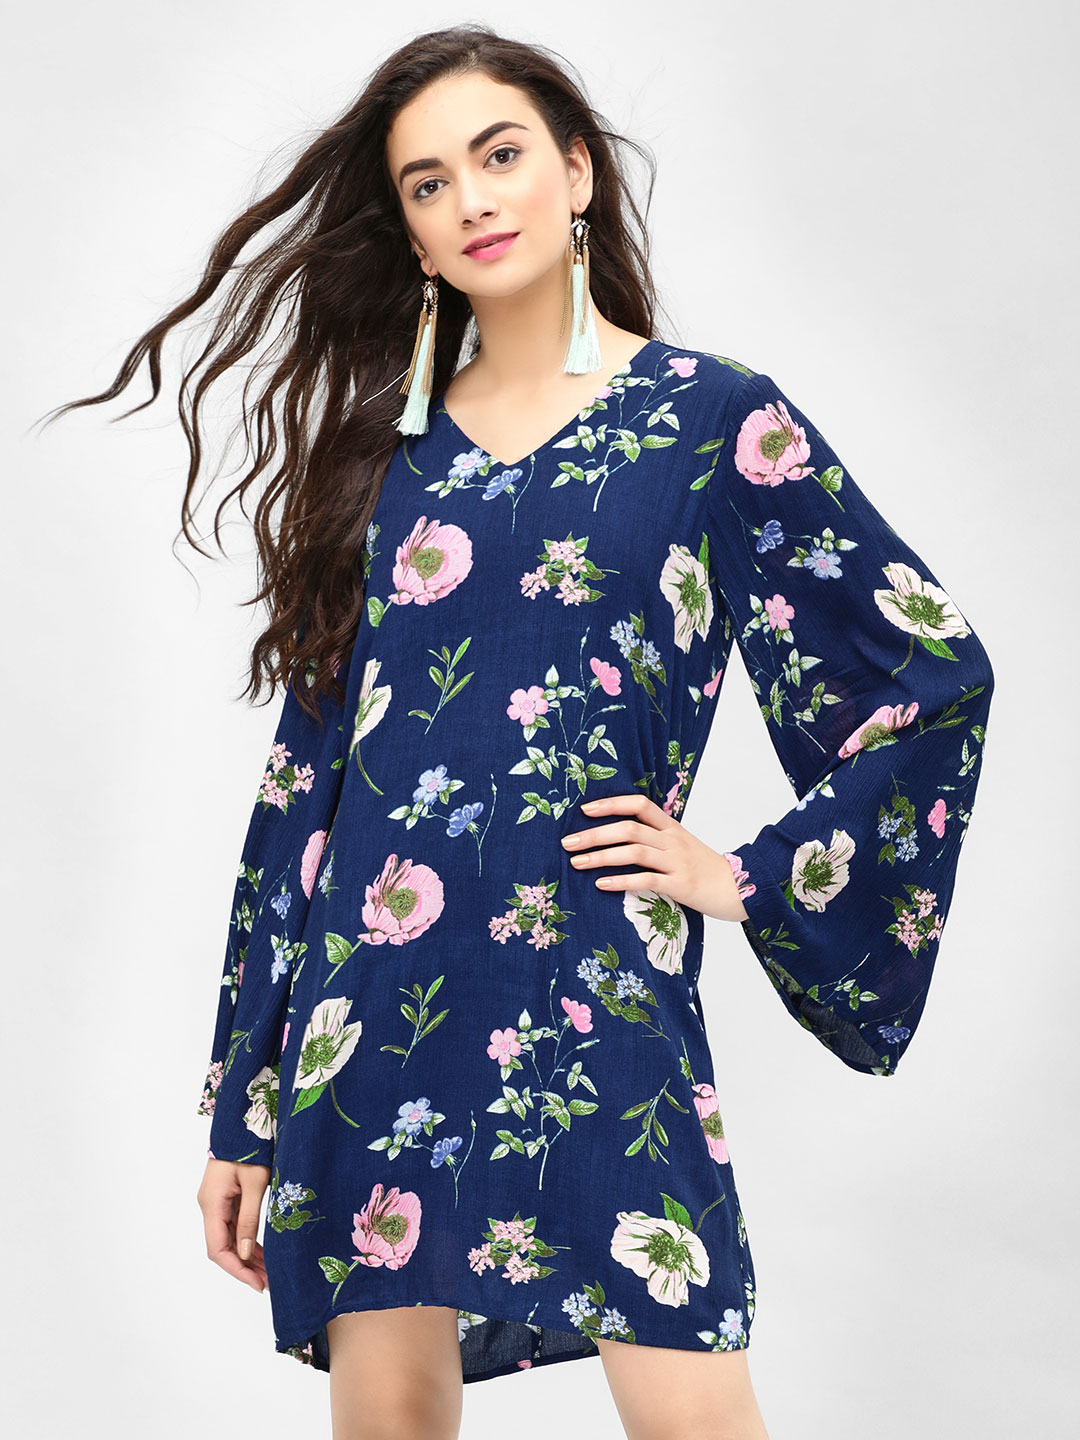 Femella Print Floral Printed Shift Dress 1